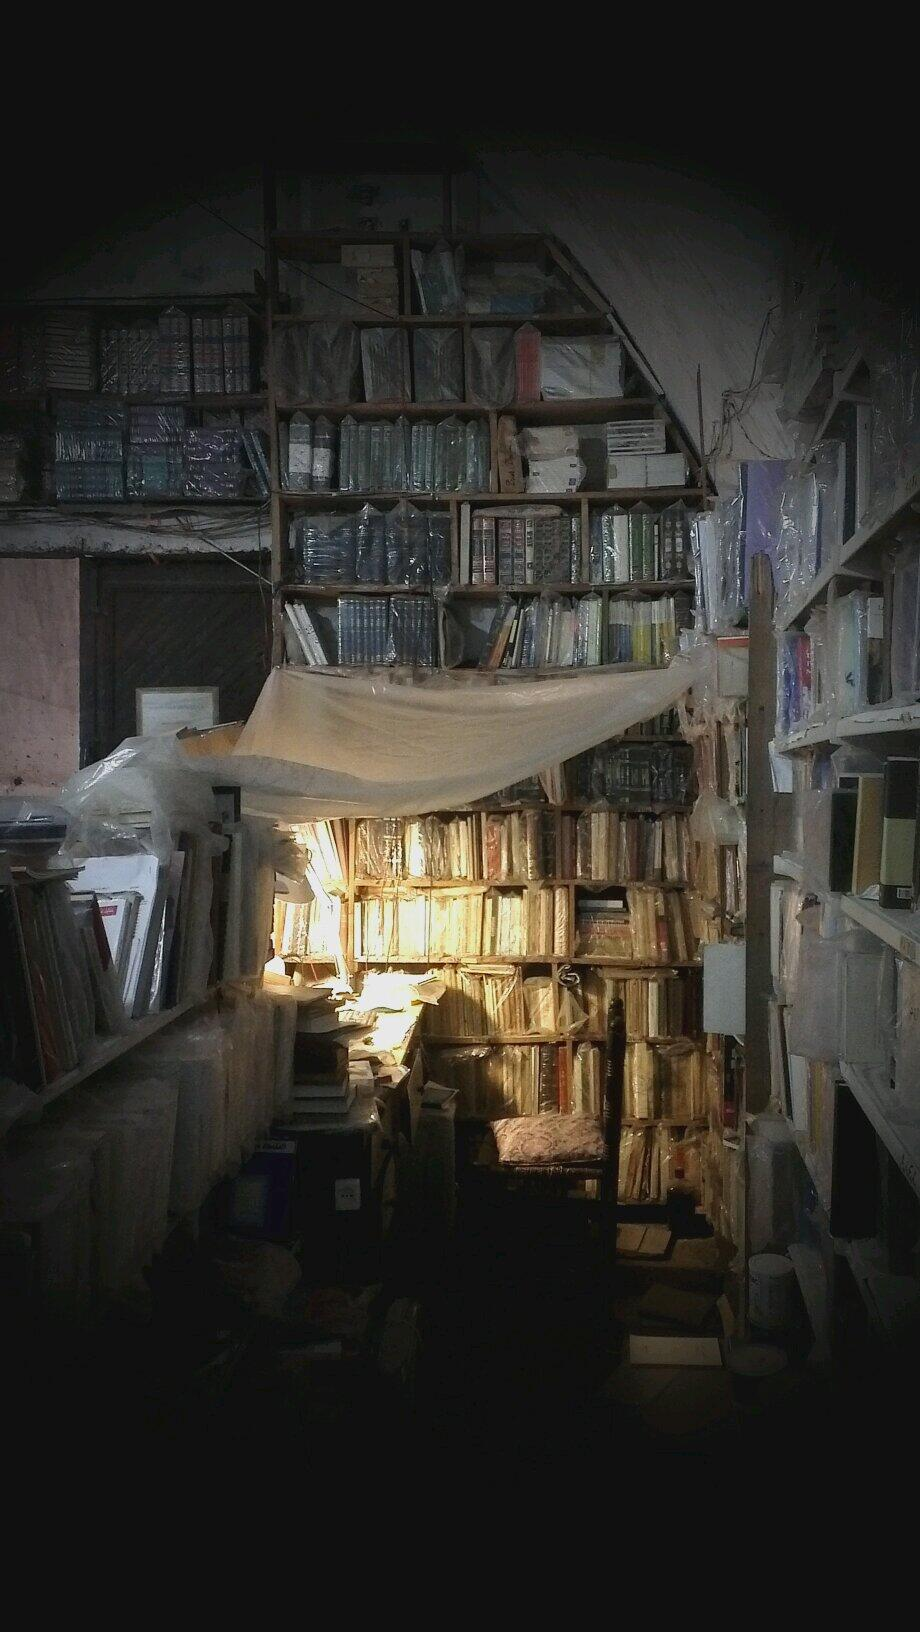 The library of father Ibrahim Sarrouj in Tripoli. Now burned by extremists. Shame on you. http://t.co/2SwTr4FOfA